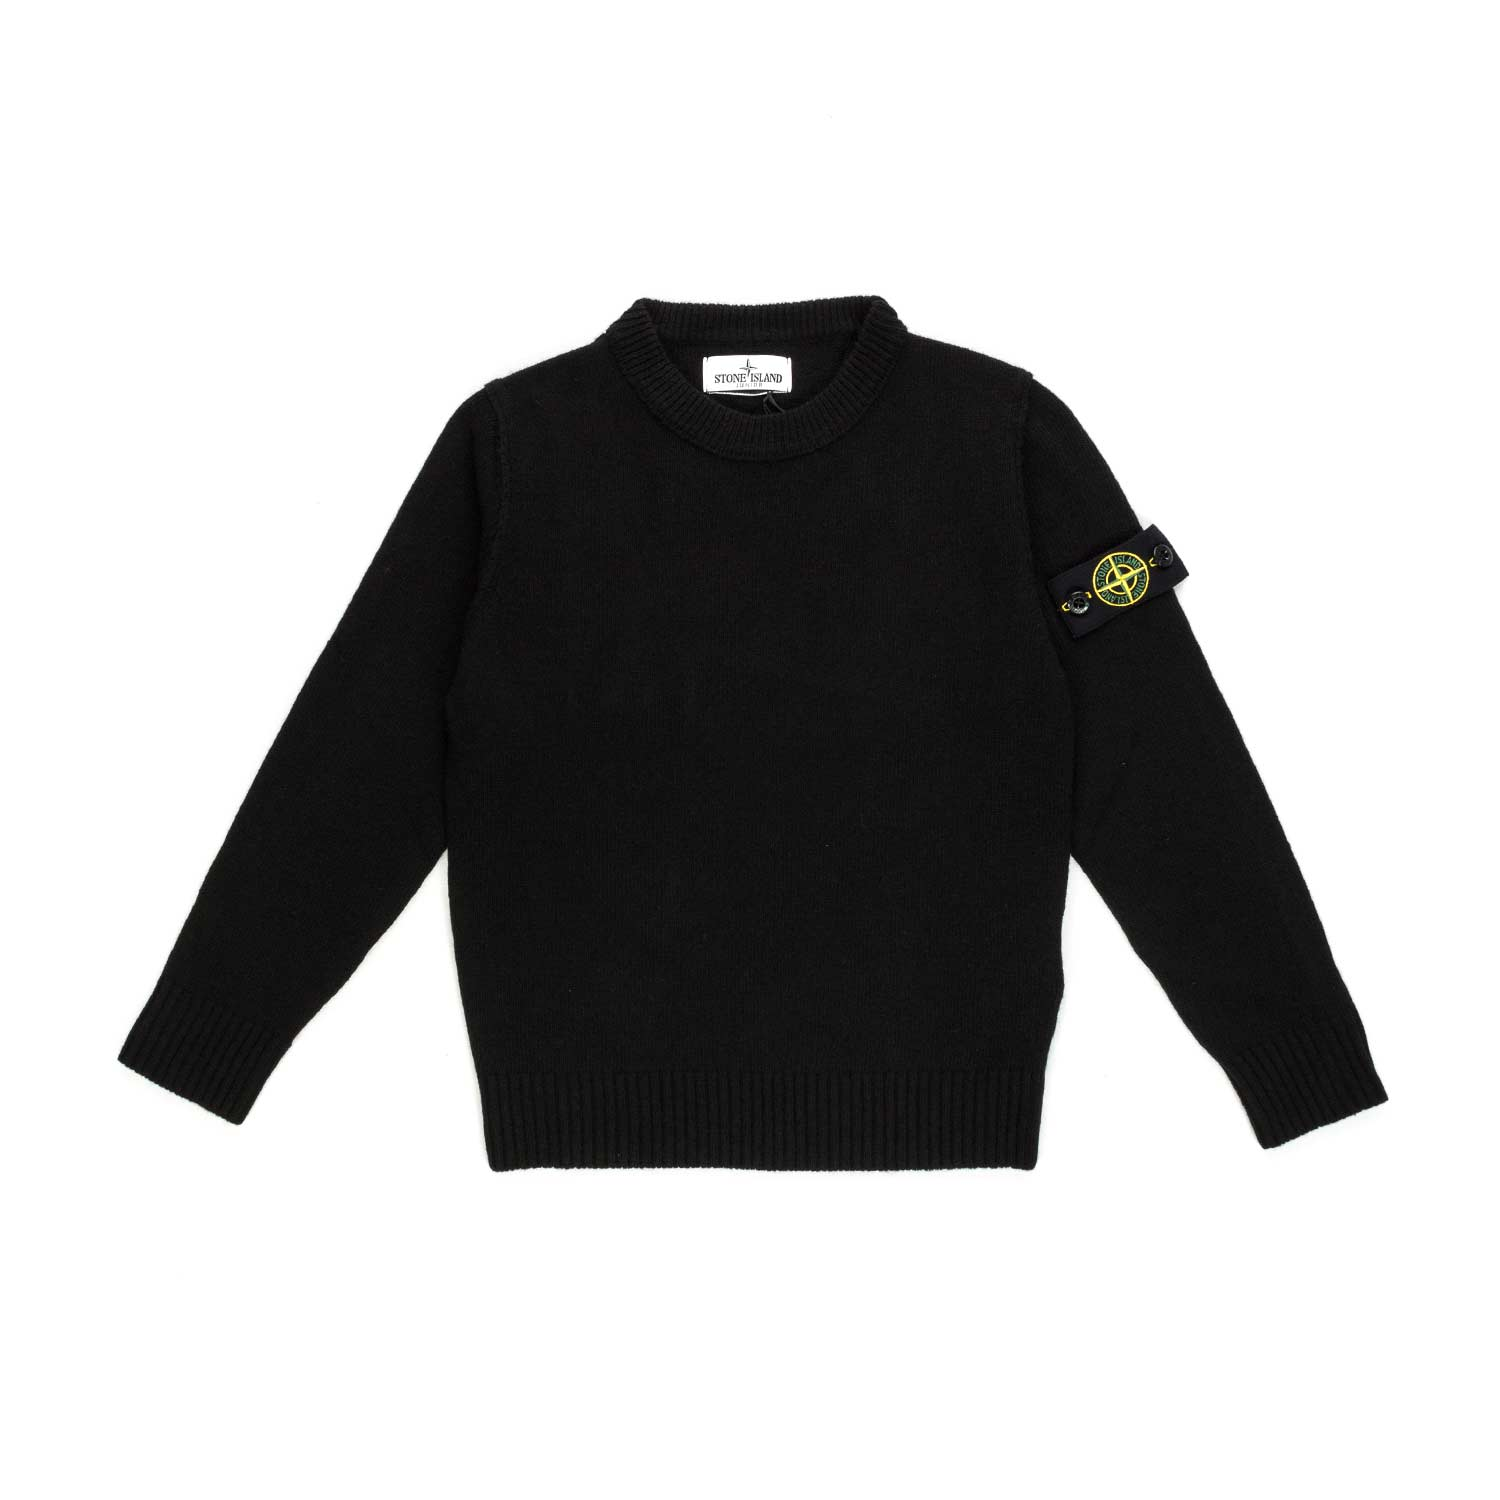 Home · STONE ISLAND · Cardigans Sweater Jumpers  Black Pullover For Boys.  27073-stone island pullover nero bambino boy-1.jpg 0fd199be2